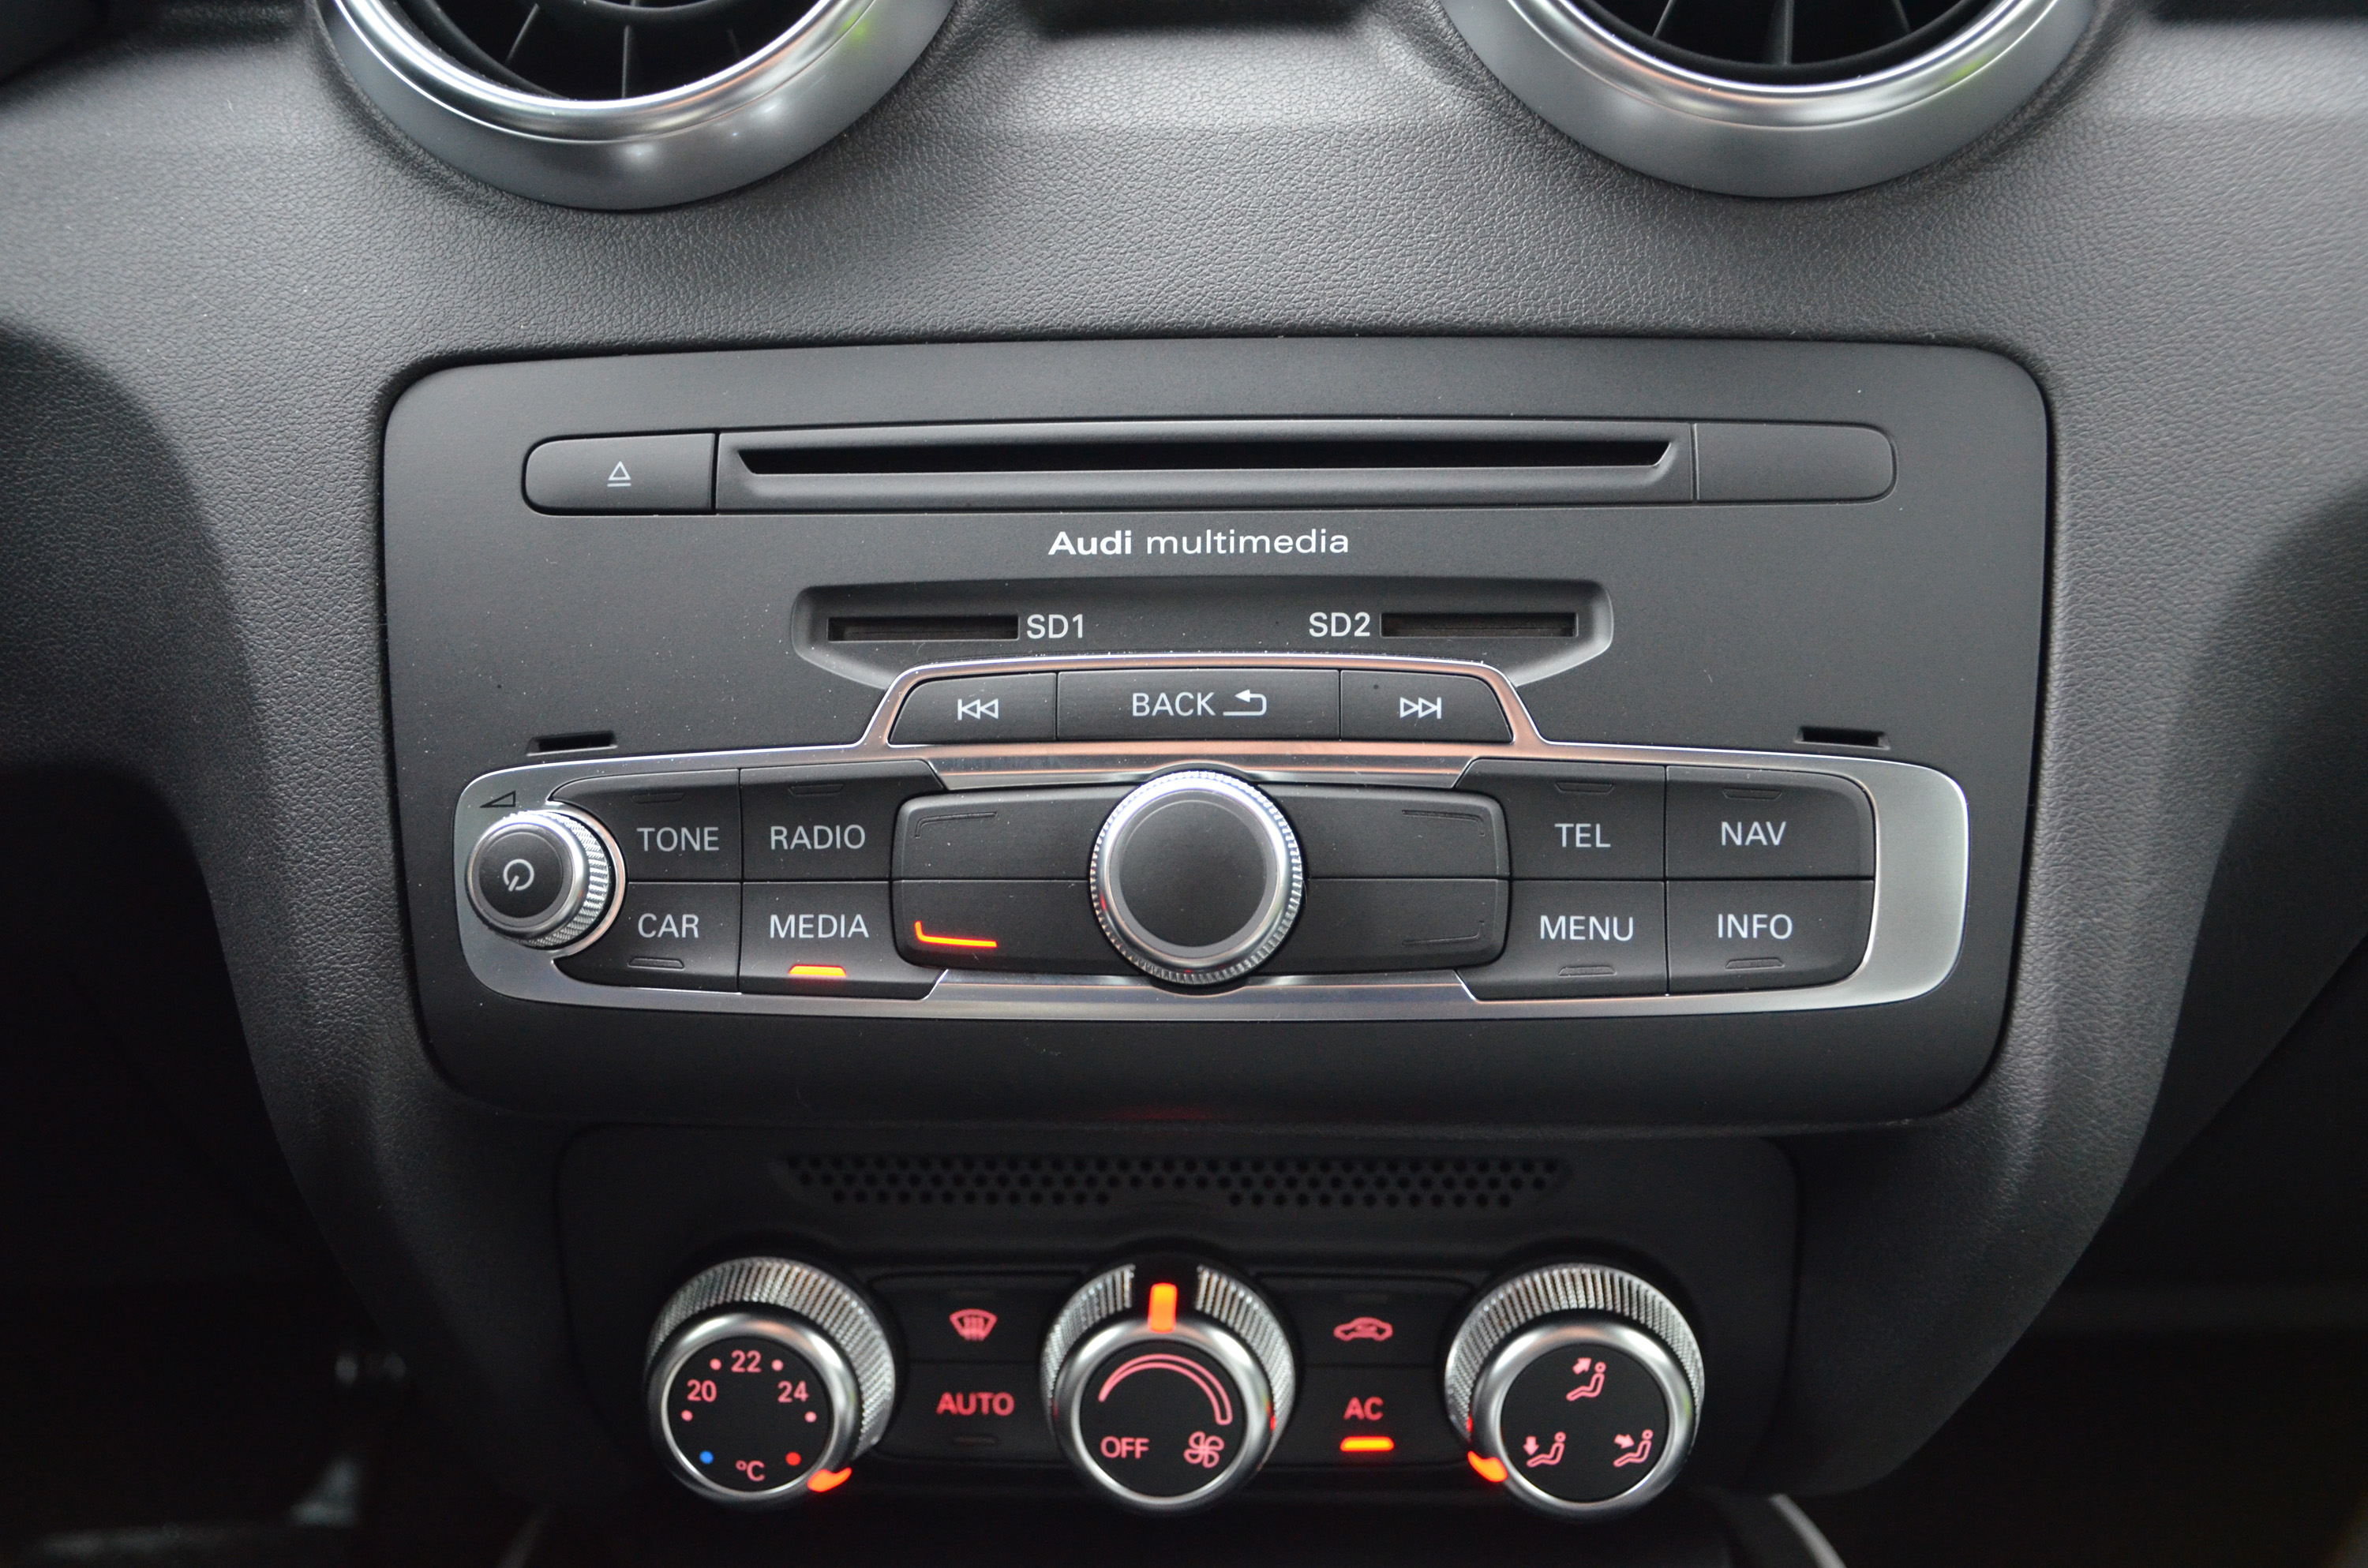 Can I install Sat Nav software on my A1? - Audi A1 Club - Audi